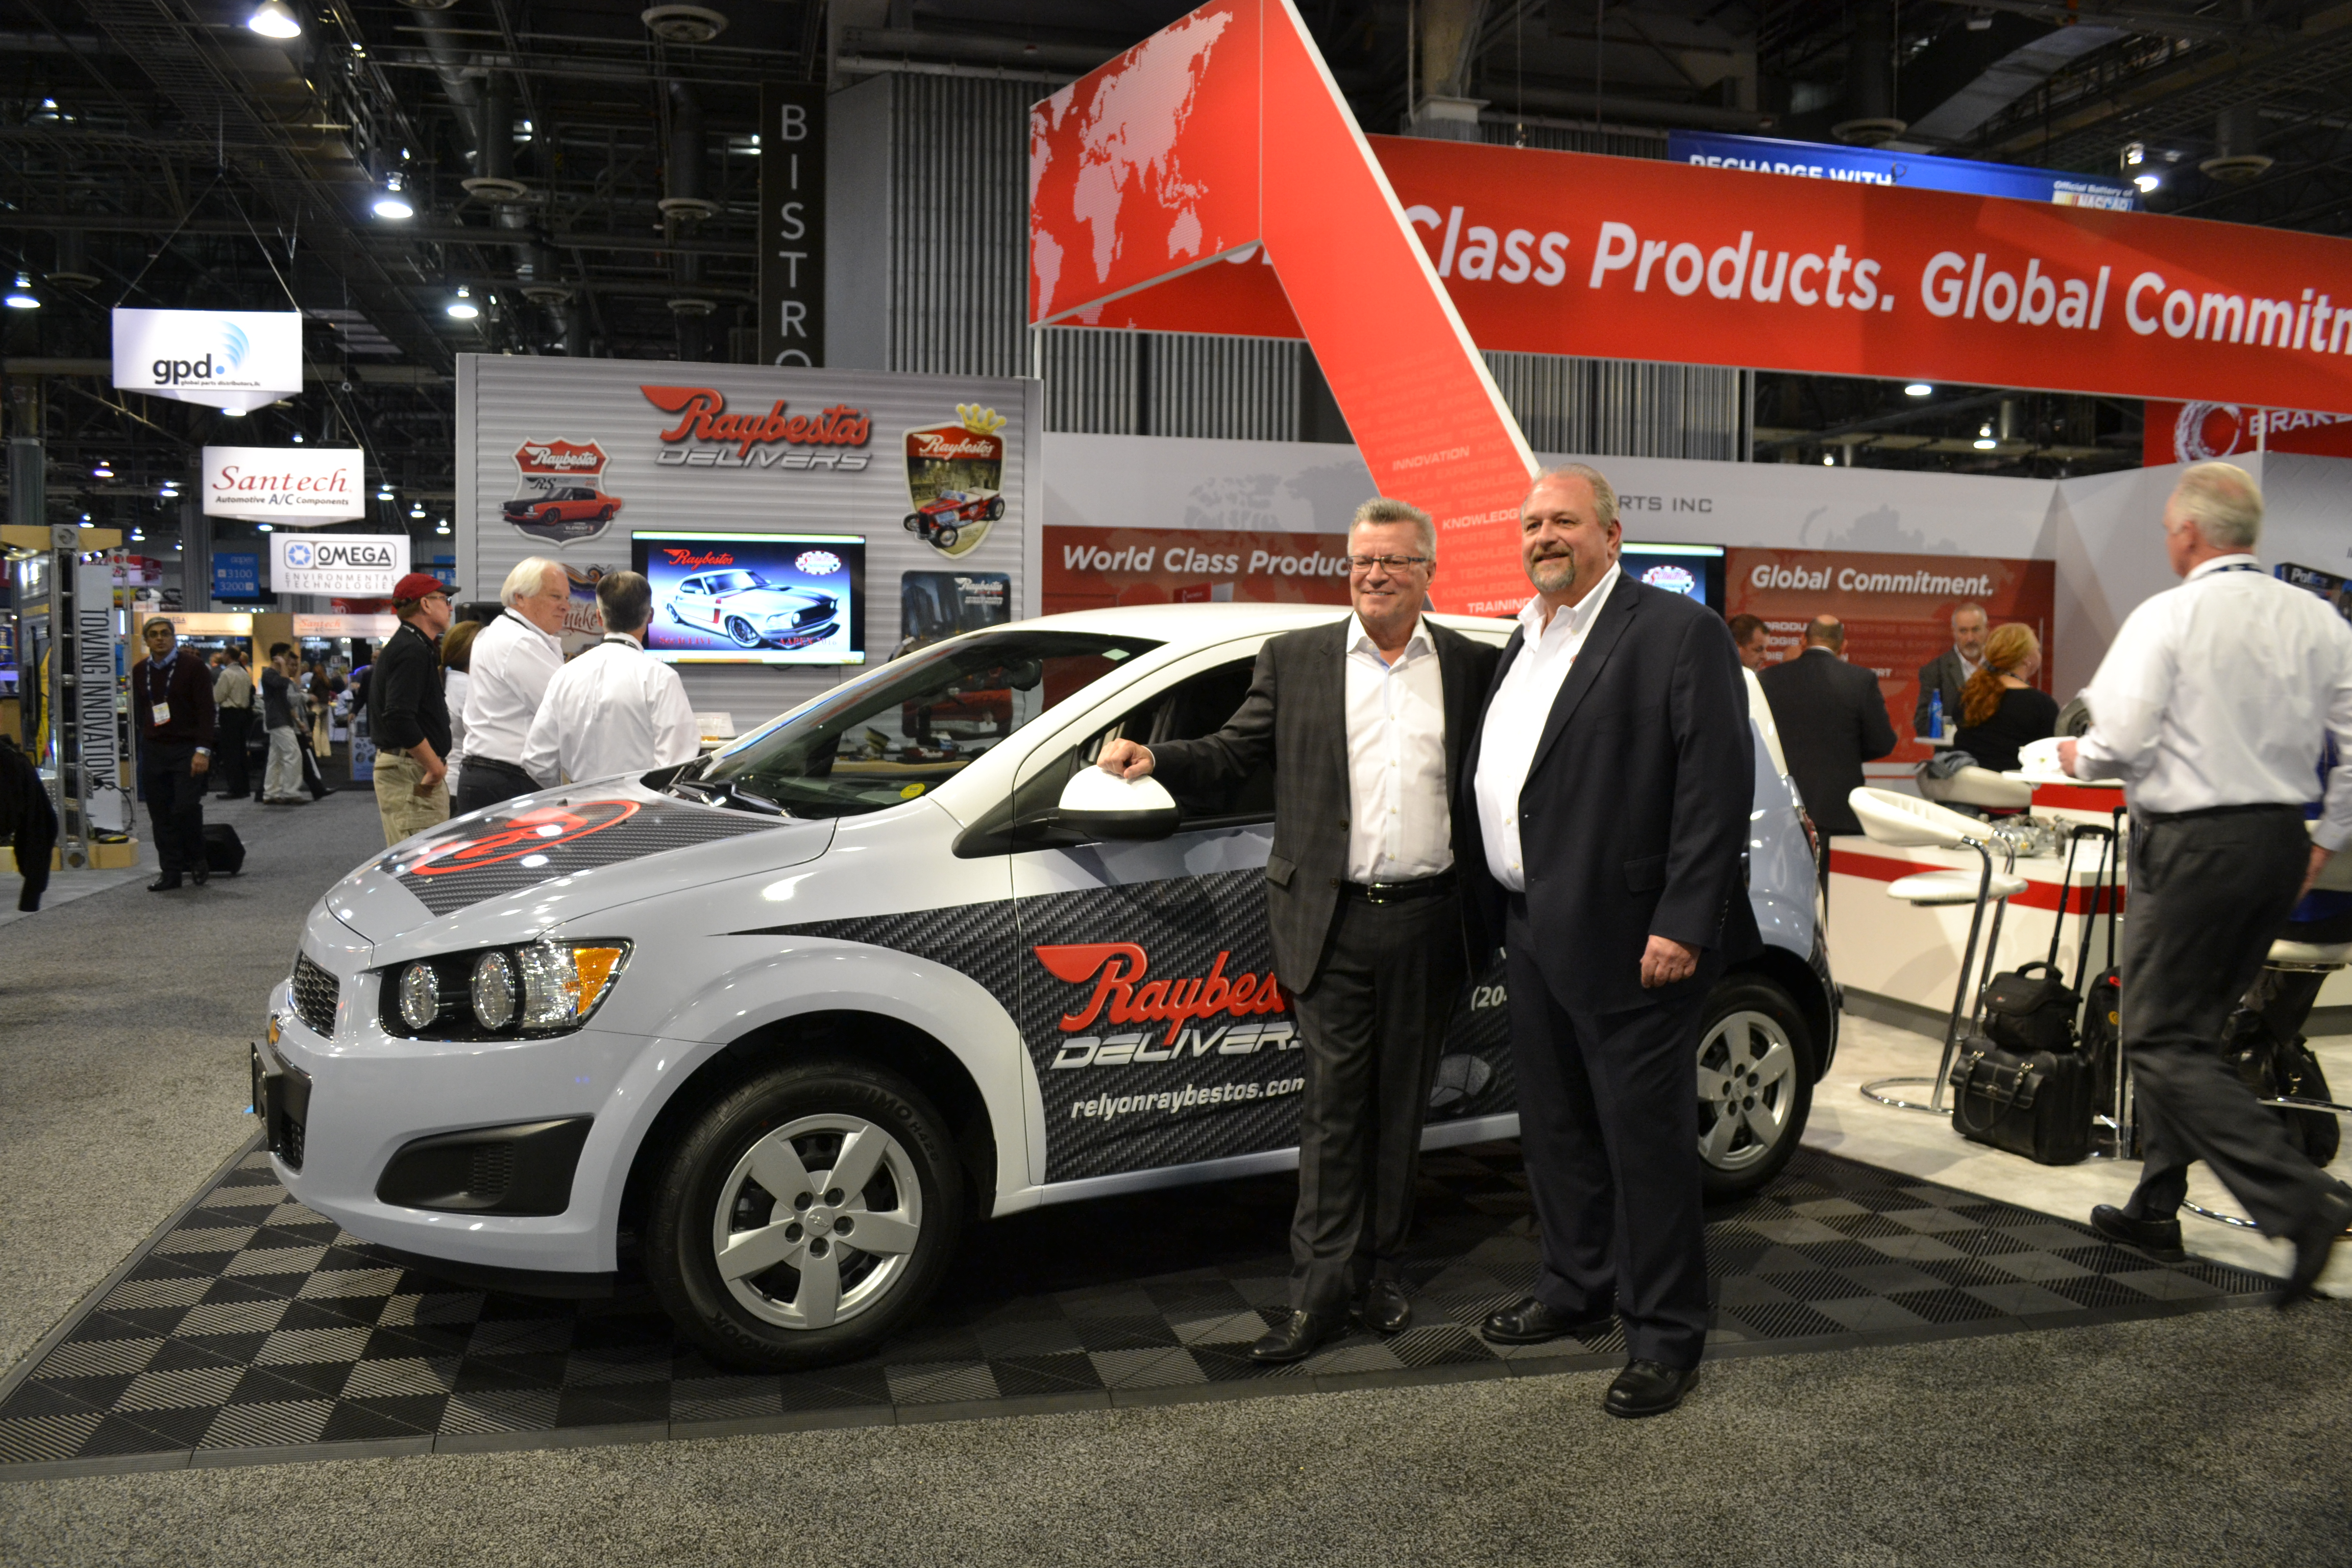 Brake Parts Gives Grand Prize to Winner at AAPEX